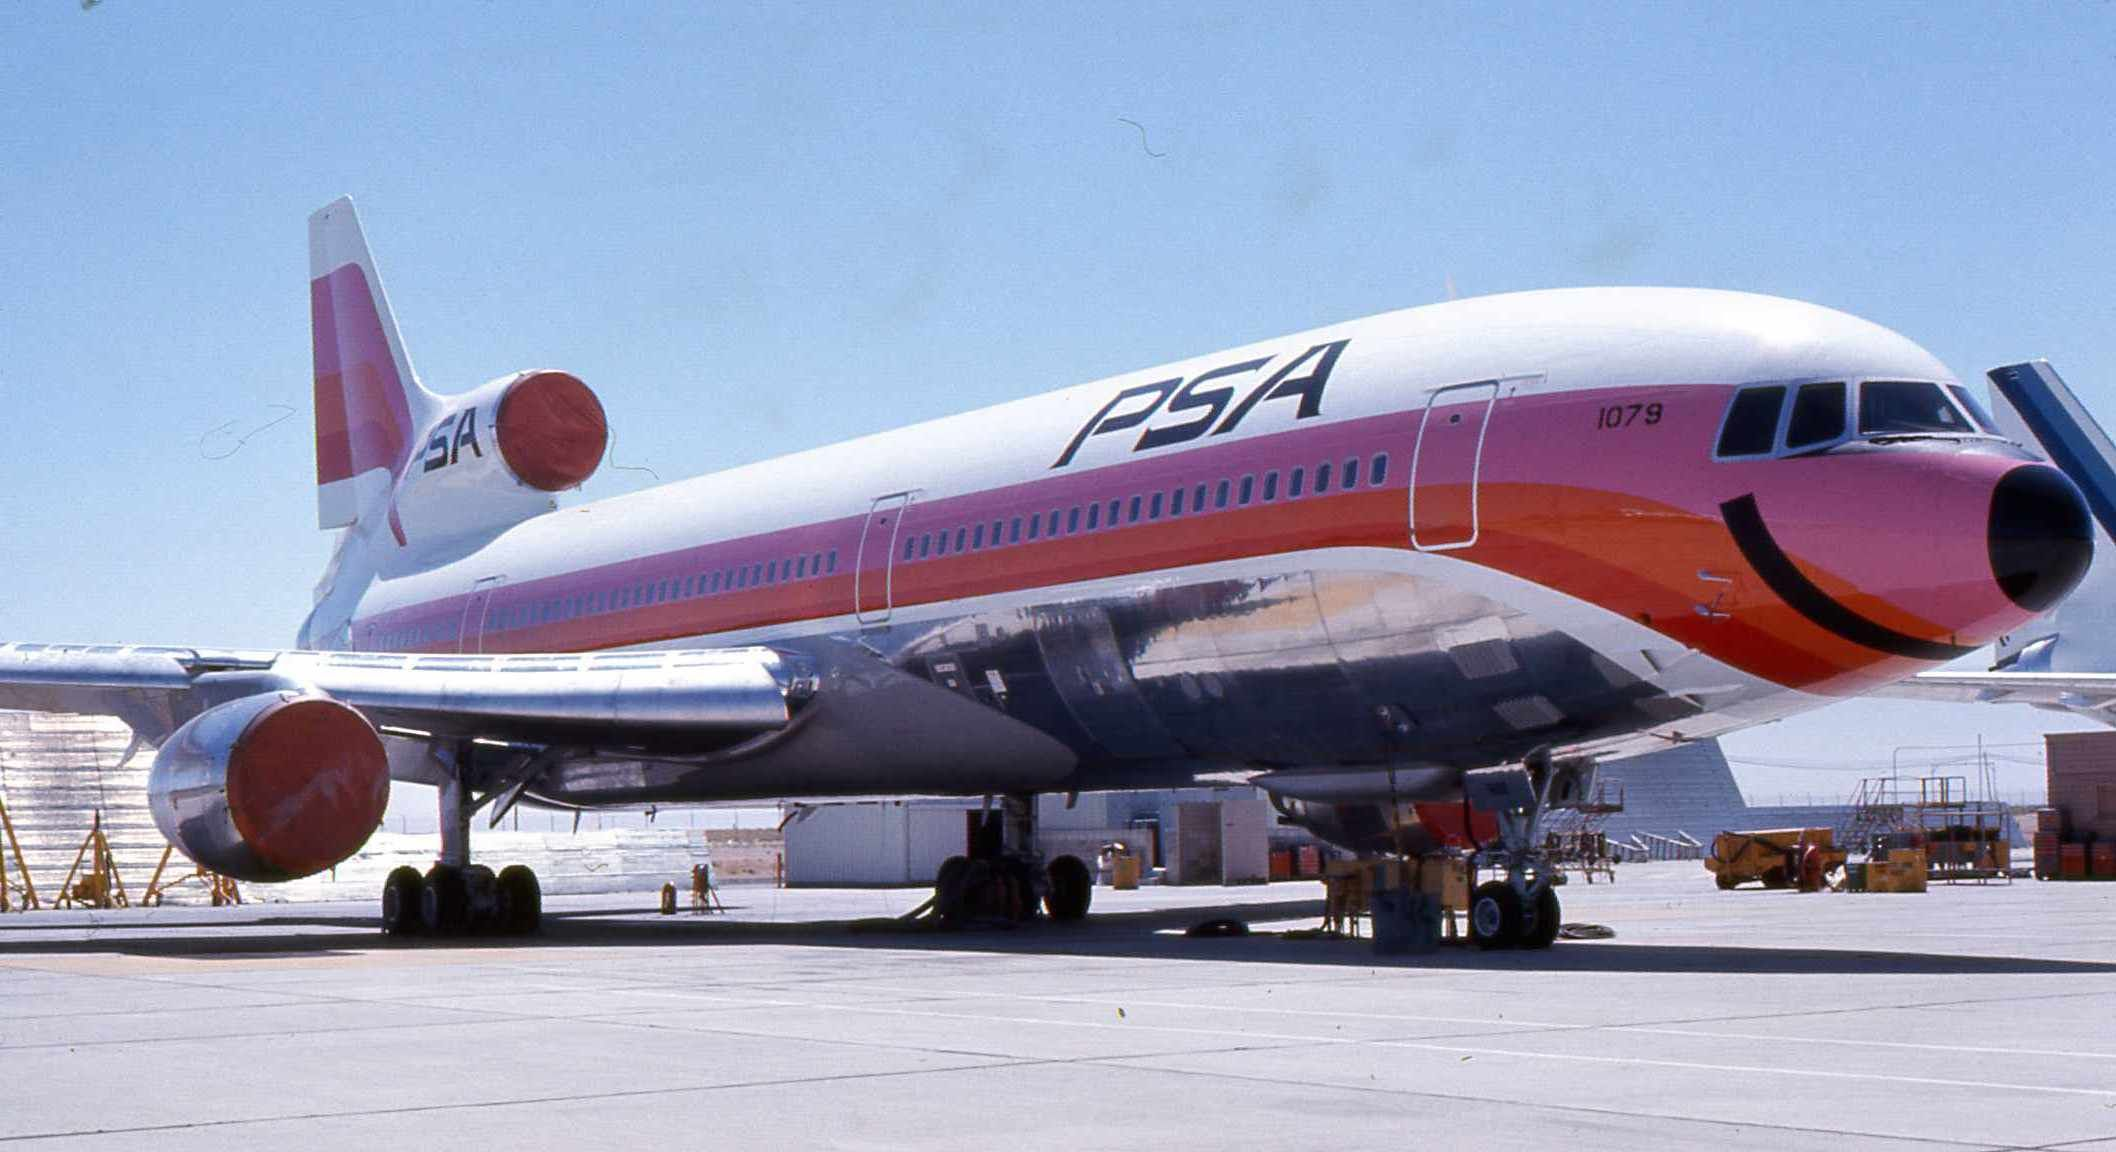 Pacific Southwest Airlines | File:Pacific Southwest Airlines L-1011 N1079.jpg - Wikipedia, the free ...